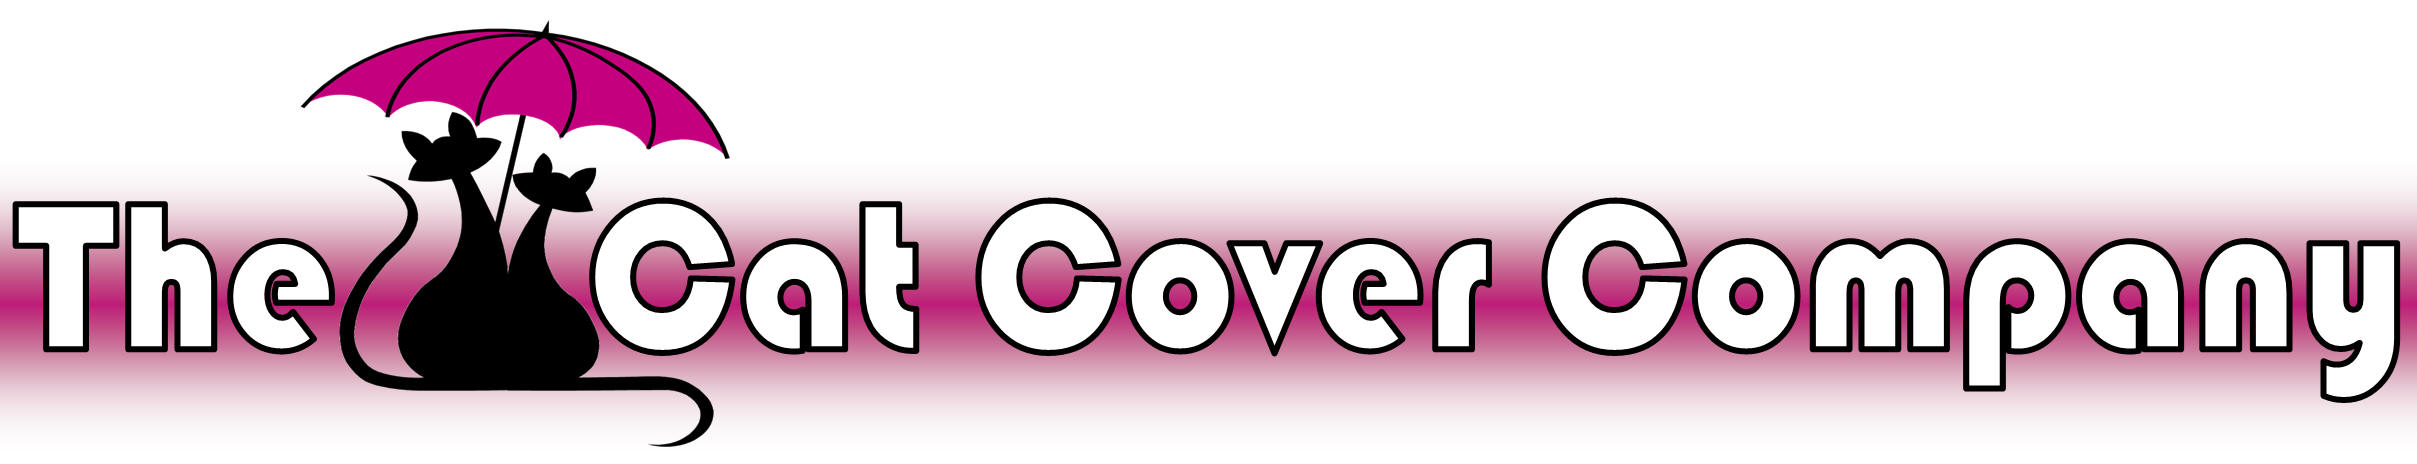 The Cat Cover Company